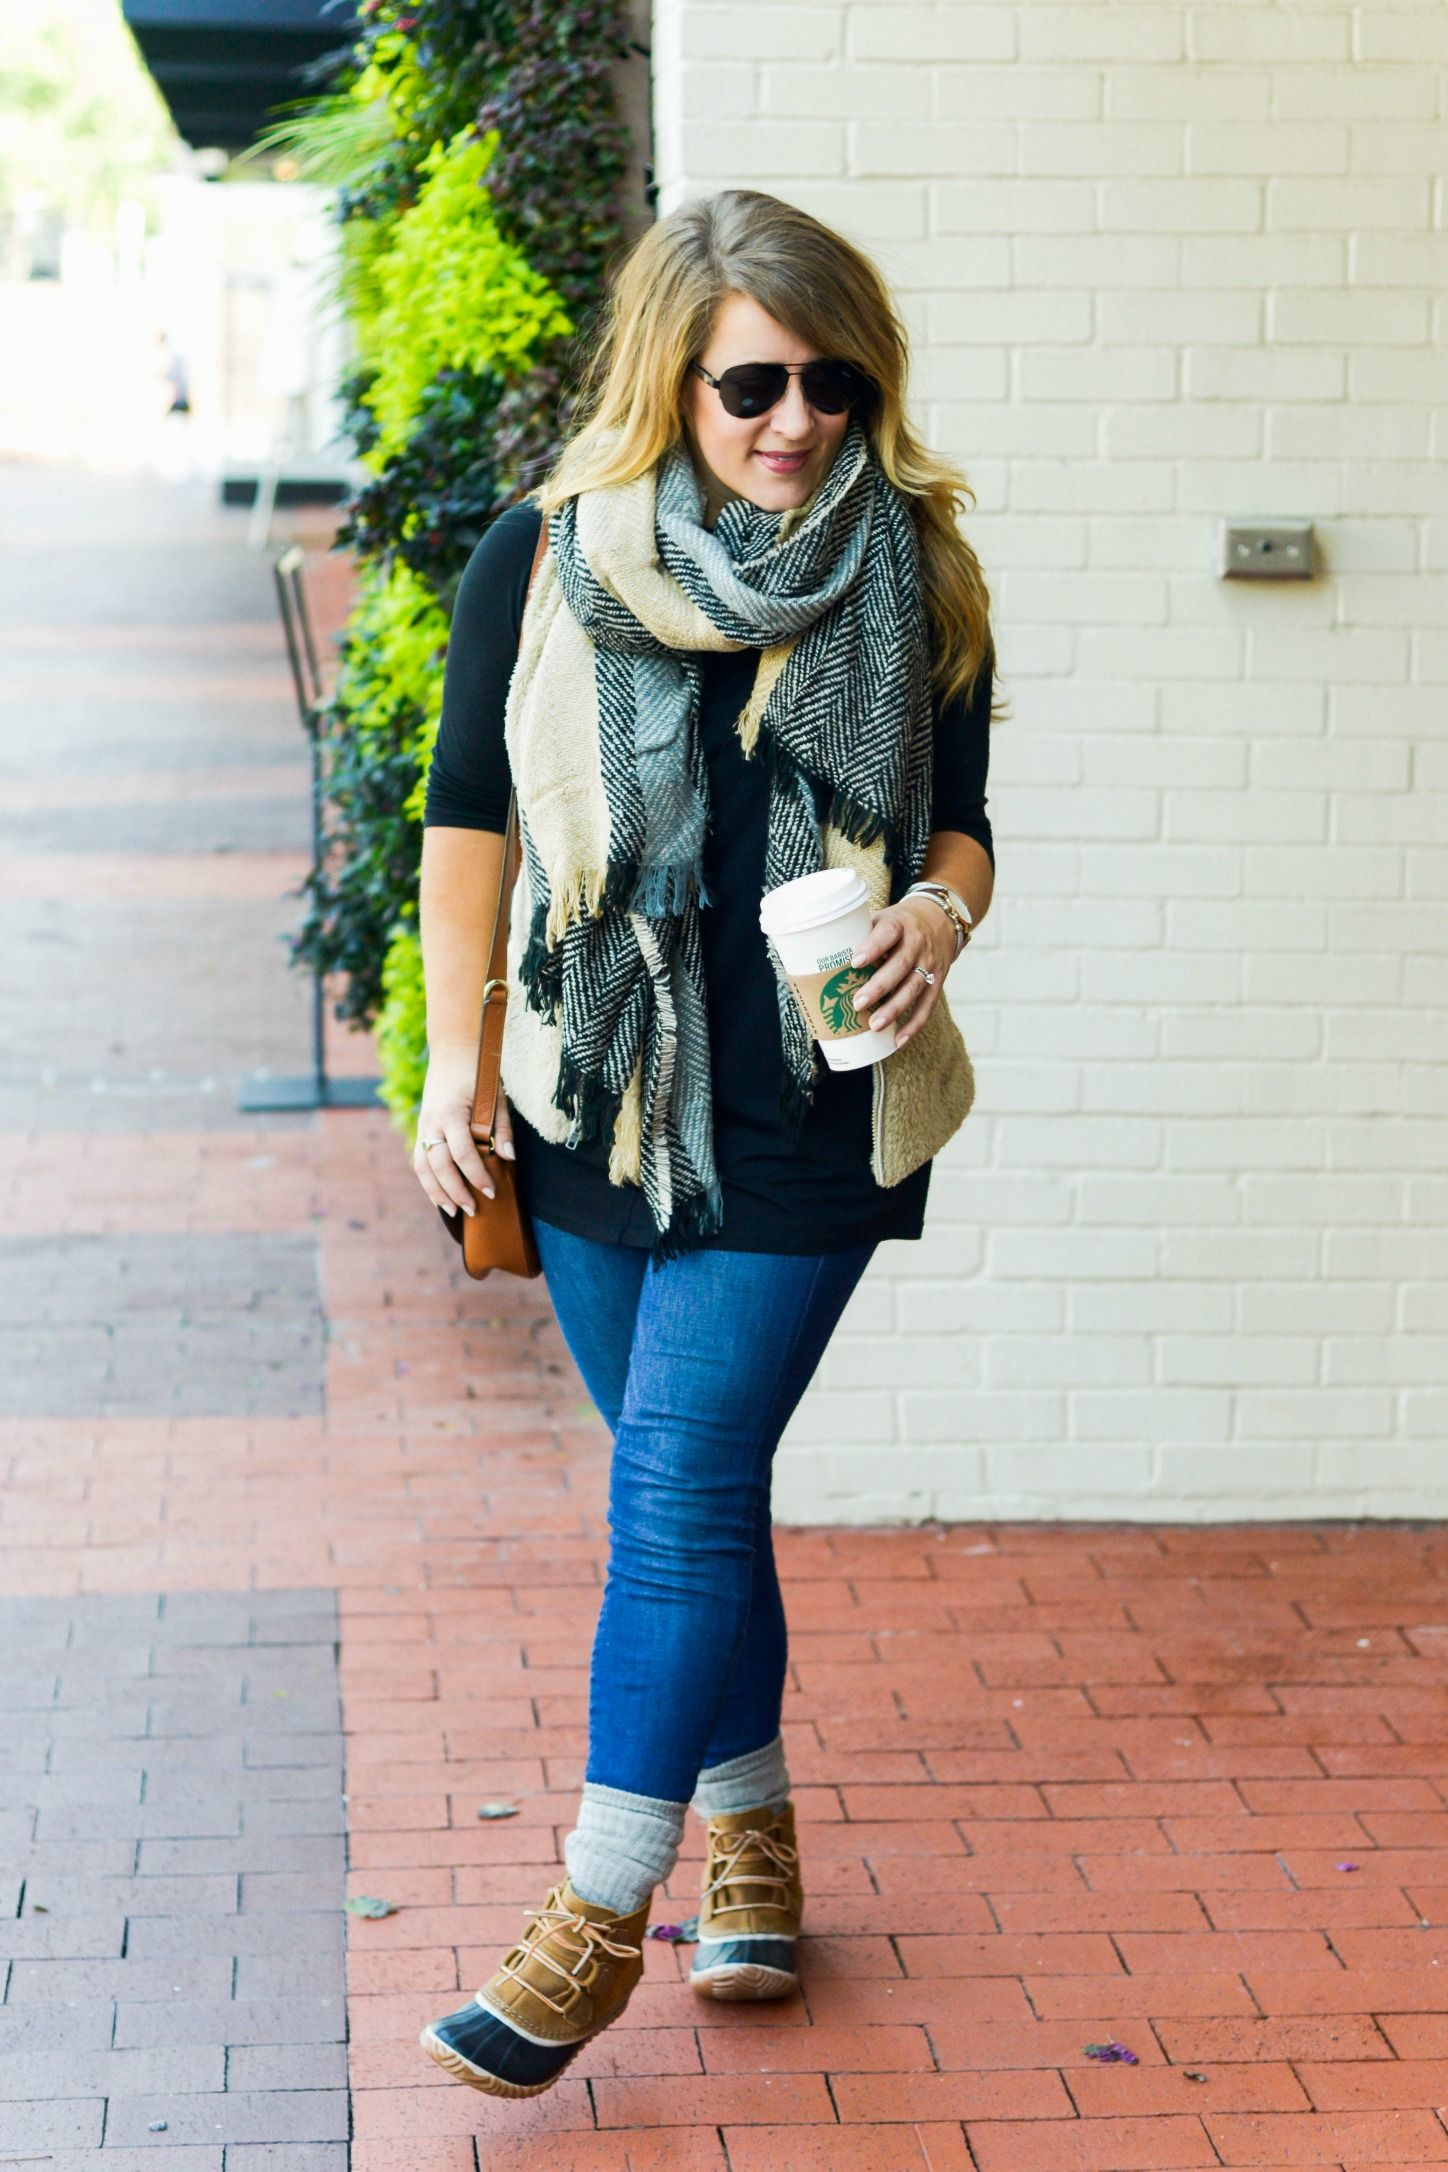 65cc4c1de6294 Duck boot outfit - click through for this easy fall outfit!